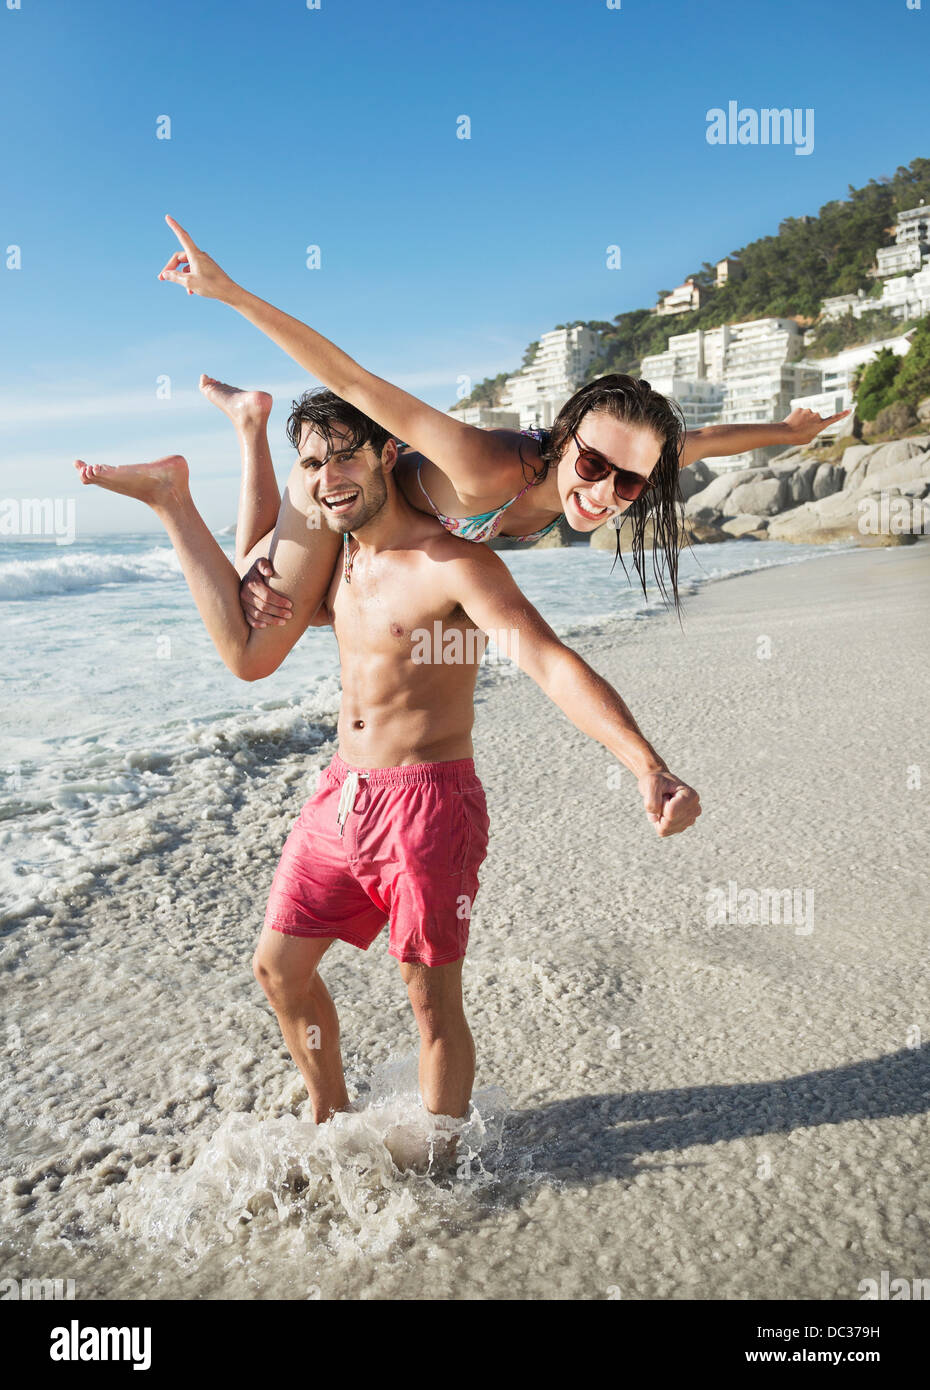 Portrait of happy man lifting woman on beach Banque D'Images